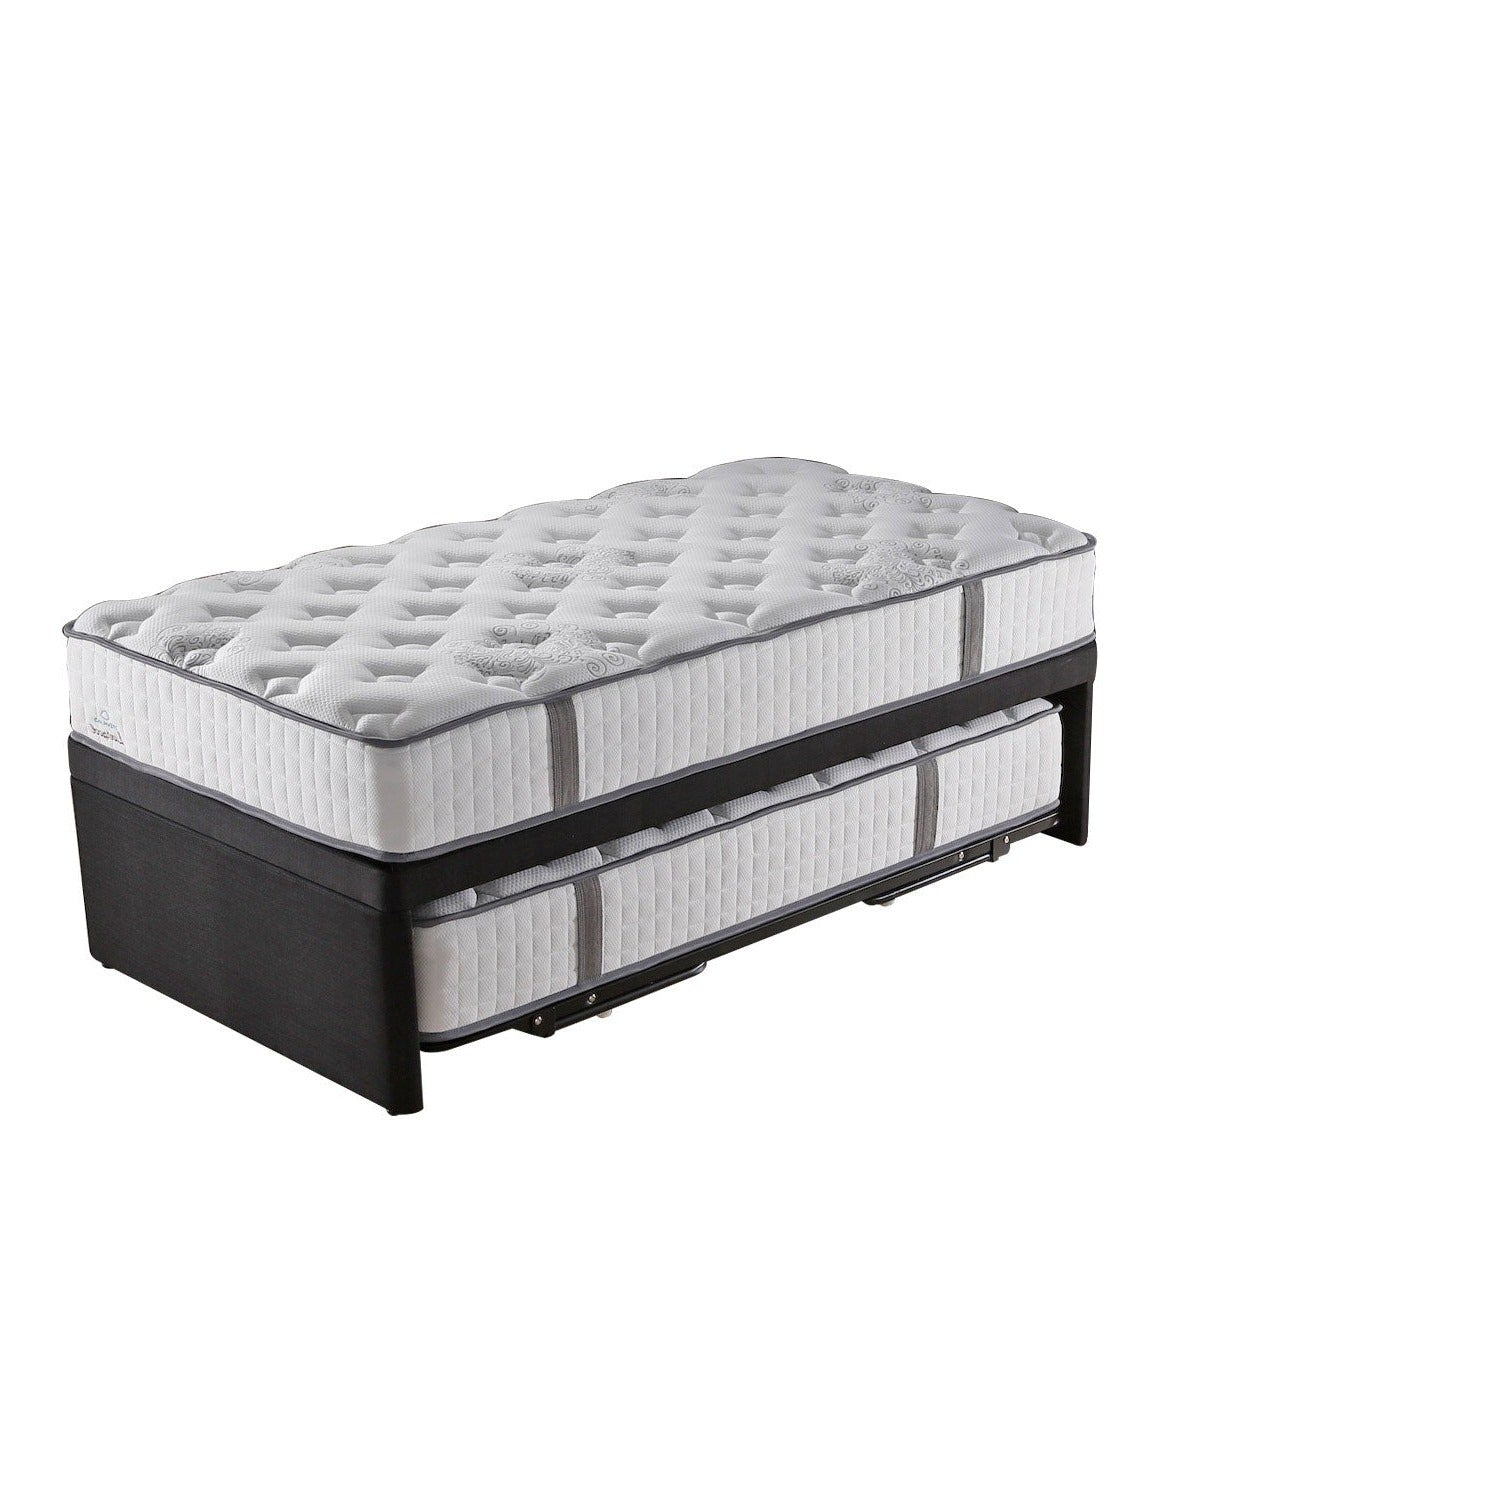 Trundle Bed with 2 Liverpool Mattresses - The Furniture Store & The Bed Shop